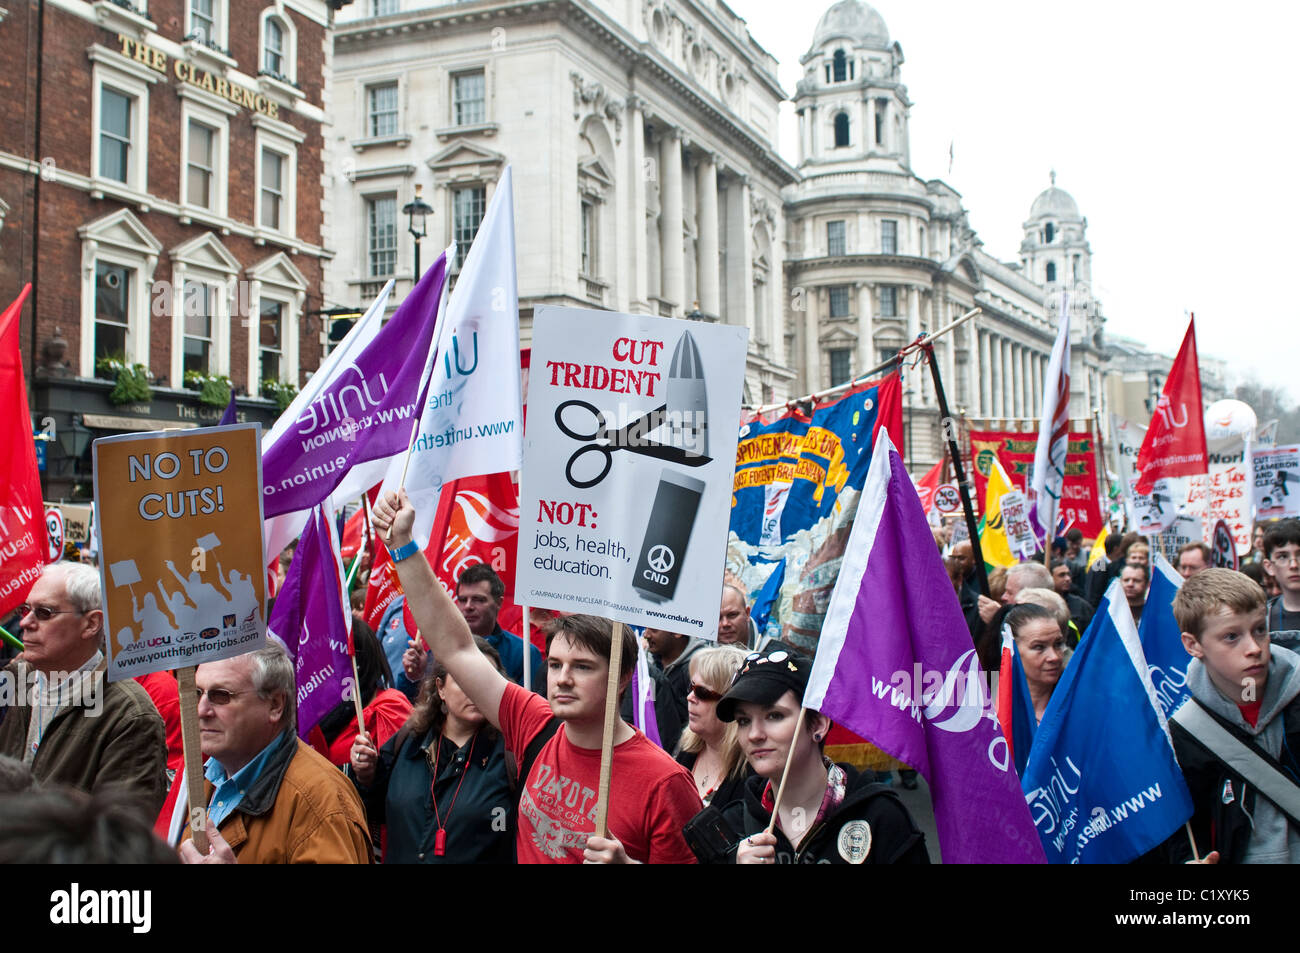 Protesters march down Whitehall. Placard 'Cut Trident', TUC March for the Alternative, London, UK, 26/03/2011 - Stock Image